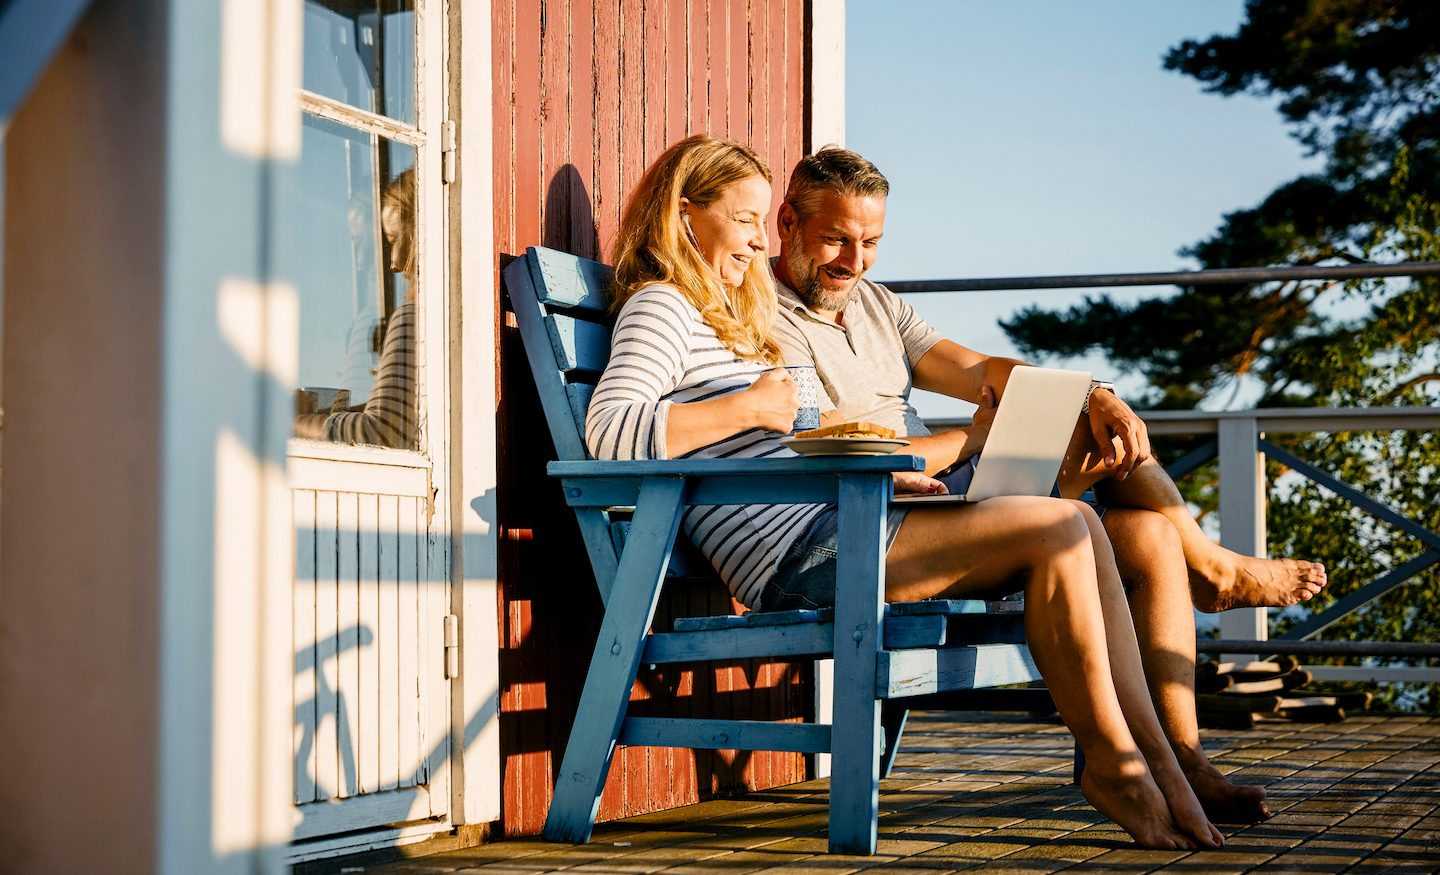 couple-on-balcony-looking-at-personal-loans-on-laptop